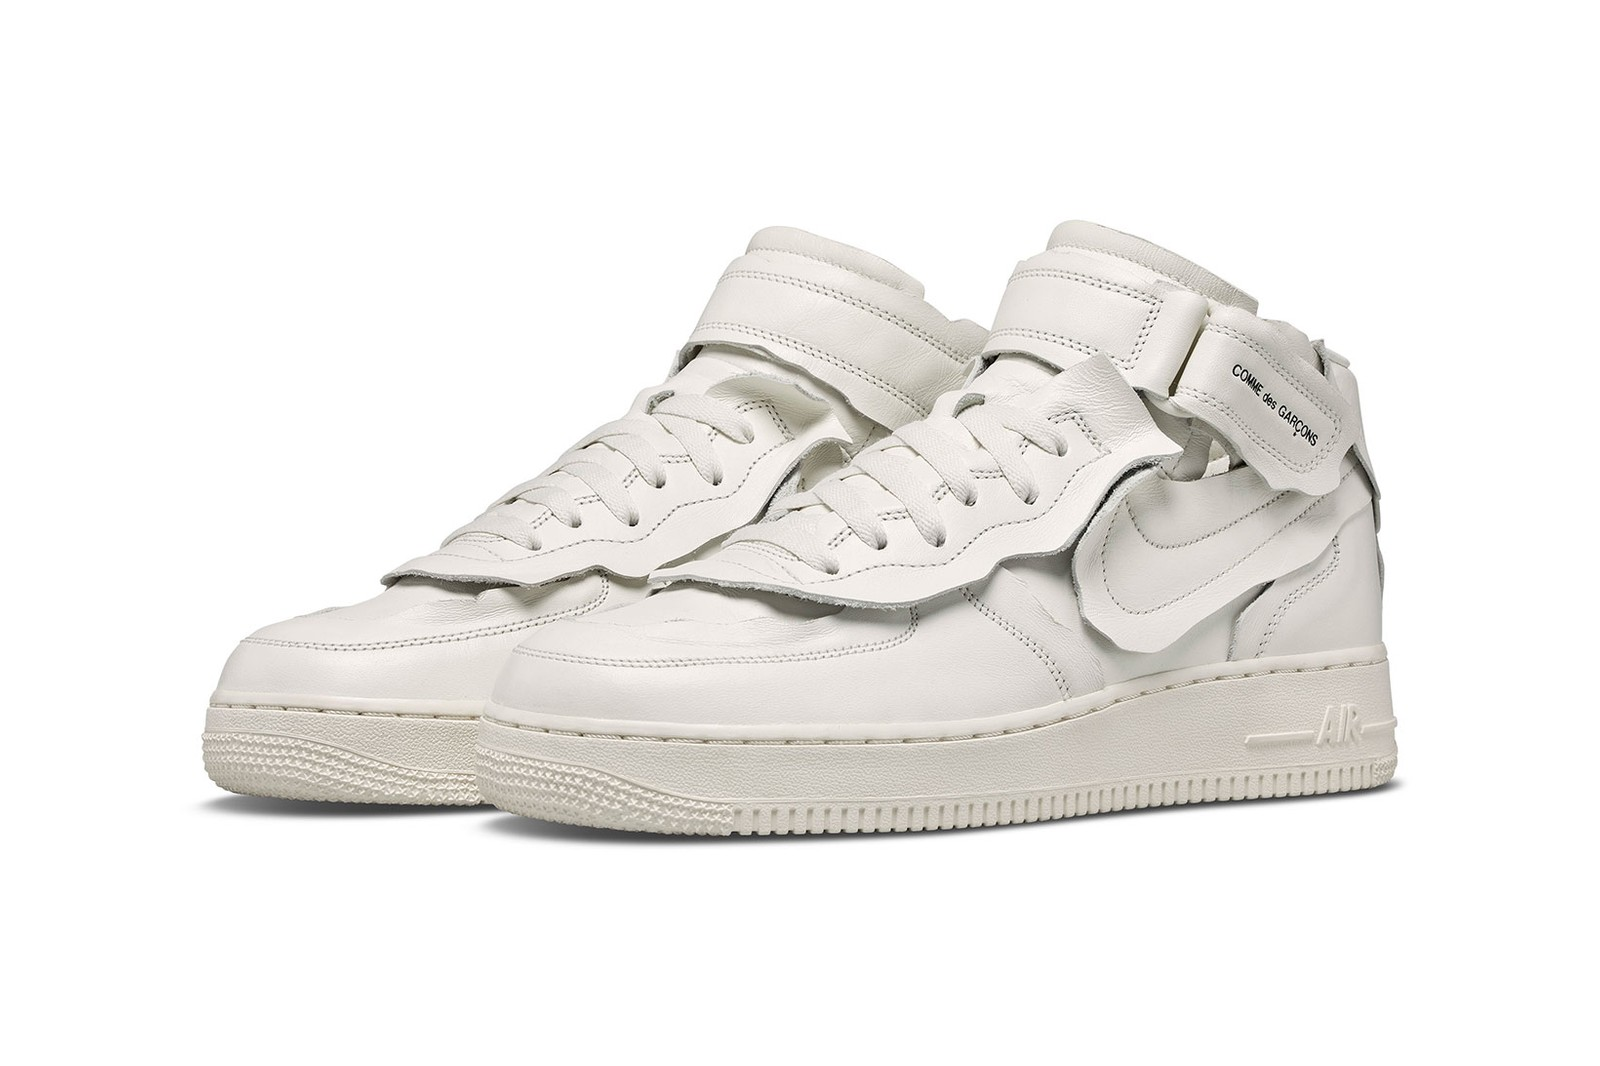 comme des garcons nike air force 1 mid cdg af1 white black sneakers price release